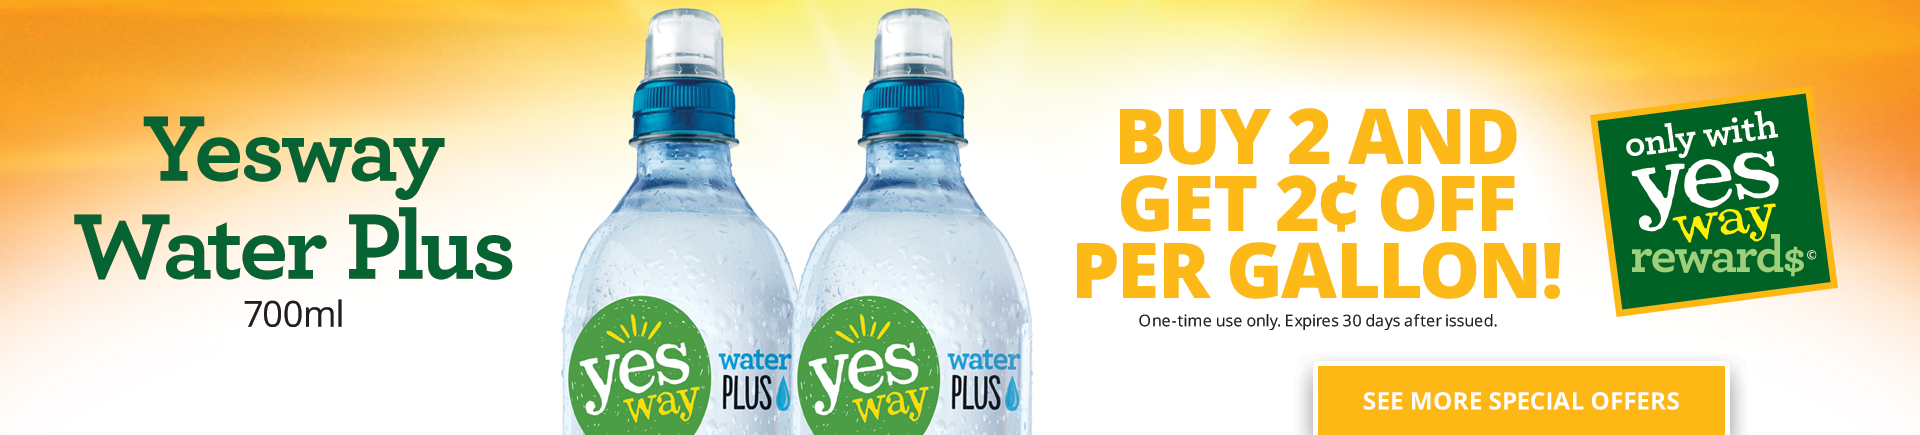 Yesway Water Plus Buy 2 and get $0.02 OFF per gallon (One-time use only. Expires 30 days after issued.)